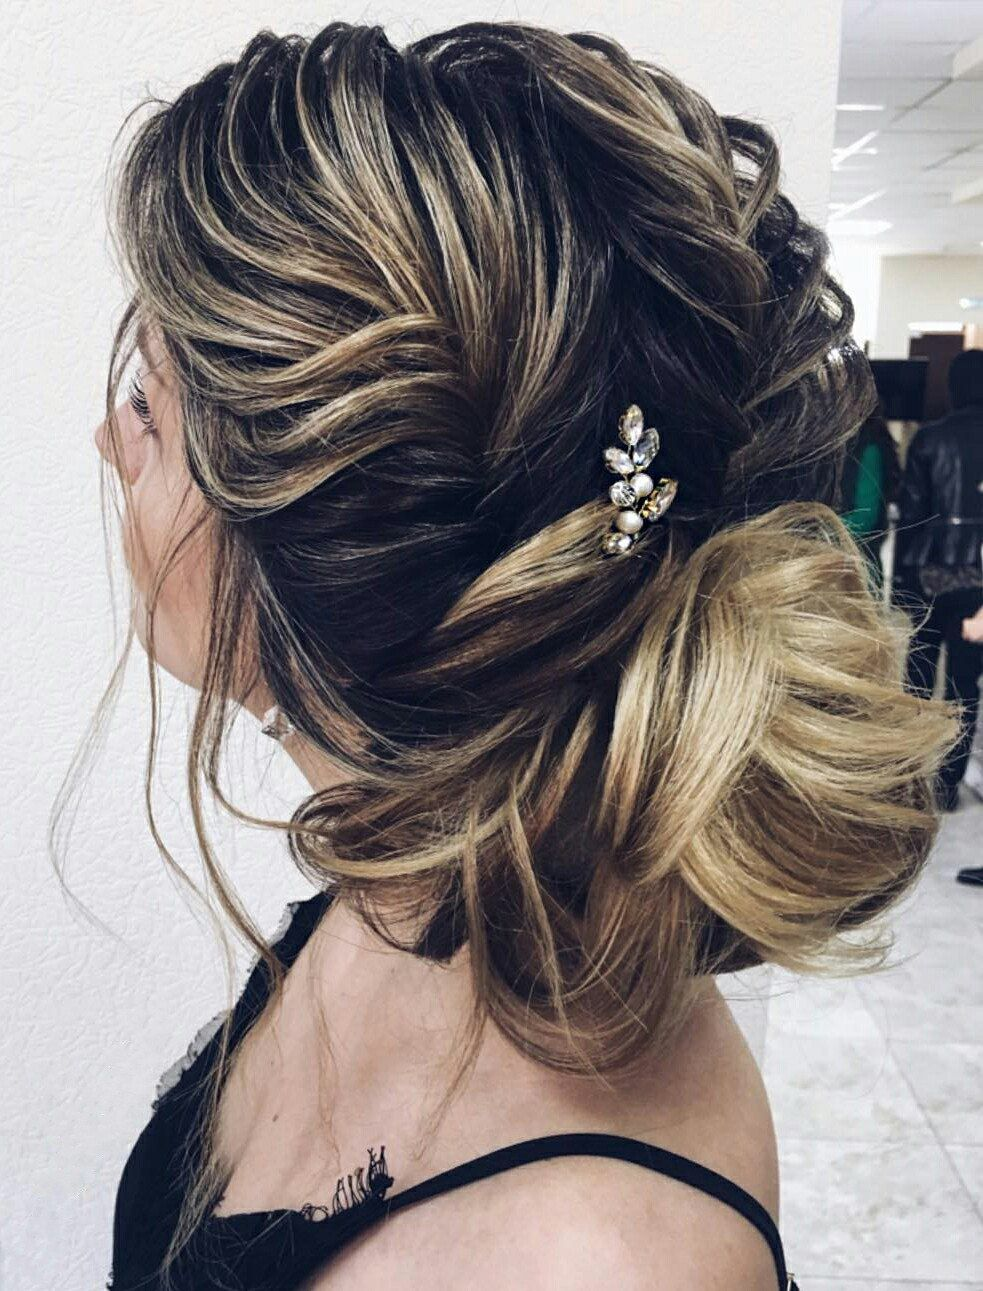 pin by monika on hairstyle | grecian hairstyles, greek hair